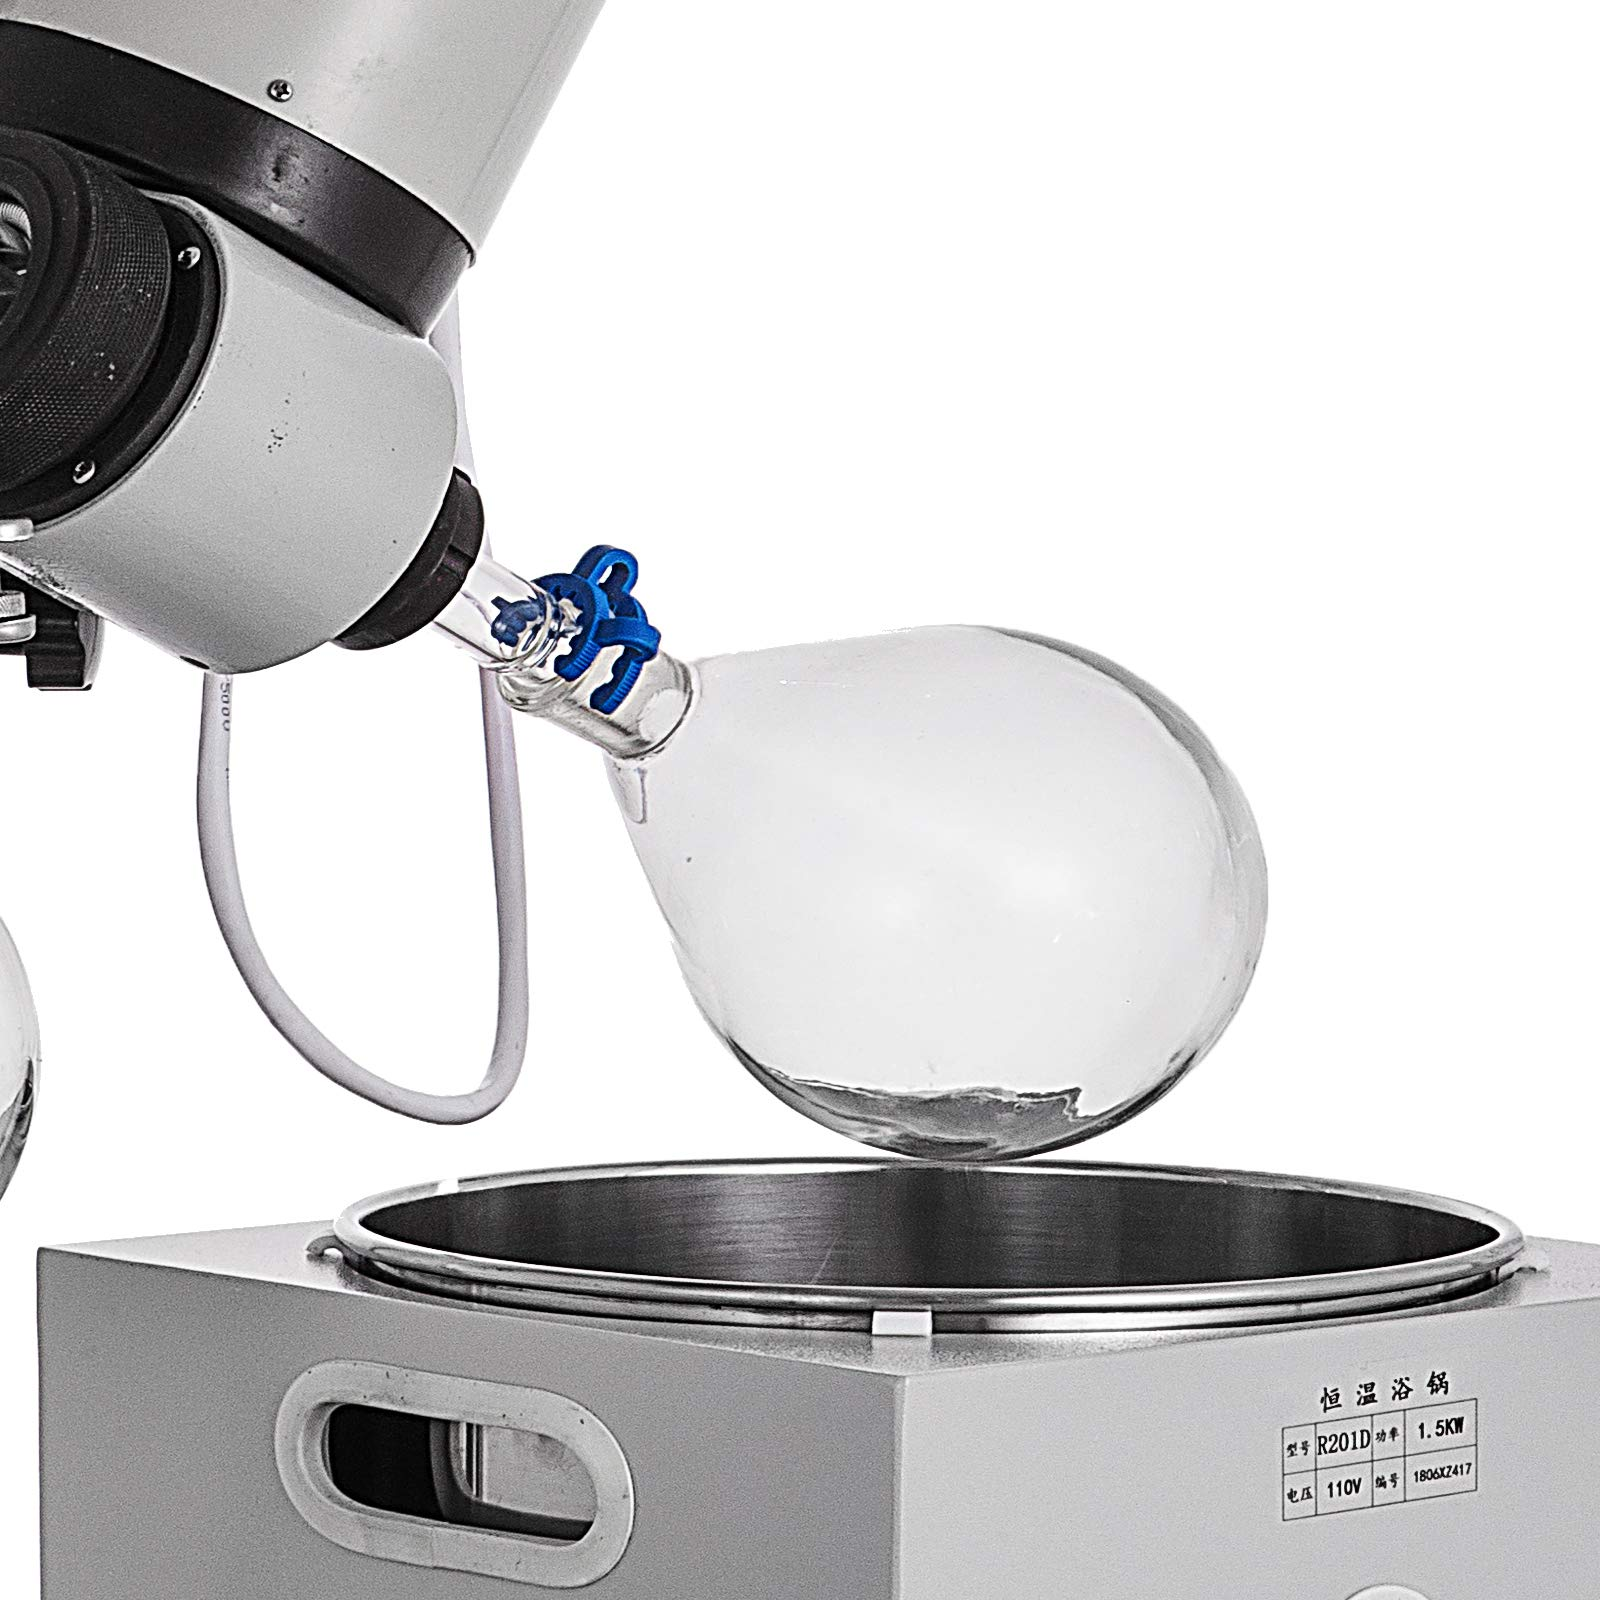 Mophorn 2L Rotary Evaporator R201D Lab Evaporator Rotary Evaporator Manual Lifting Rotavapor with LCD Screen 5-140rpm Professional Rotary Evaporator Set(2L, 5-140rpm) by Mophorn (Image #7)